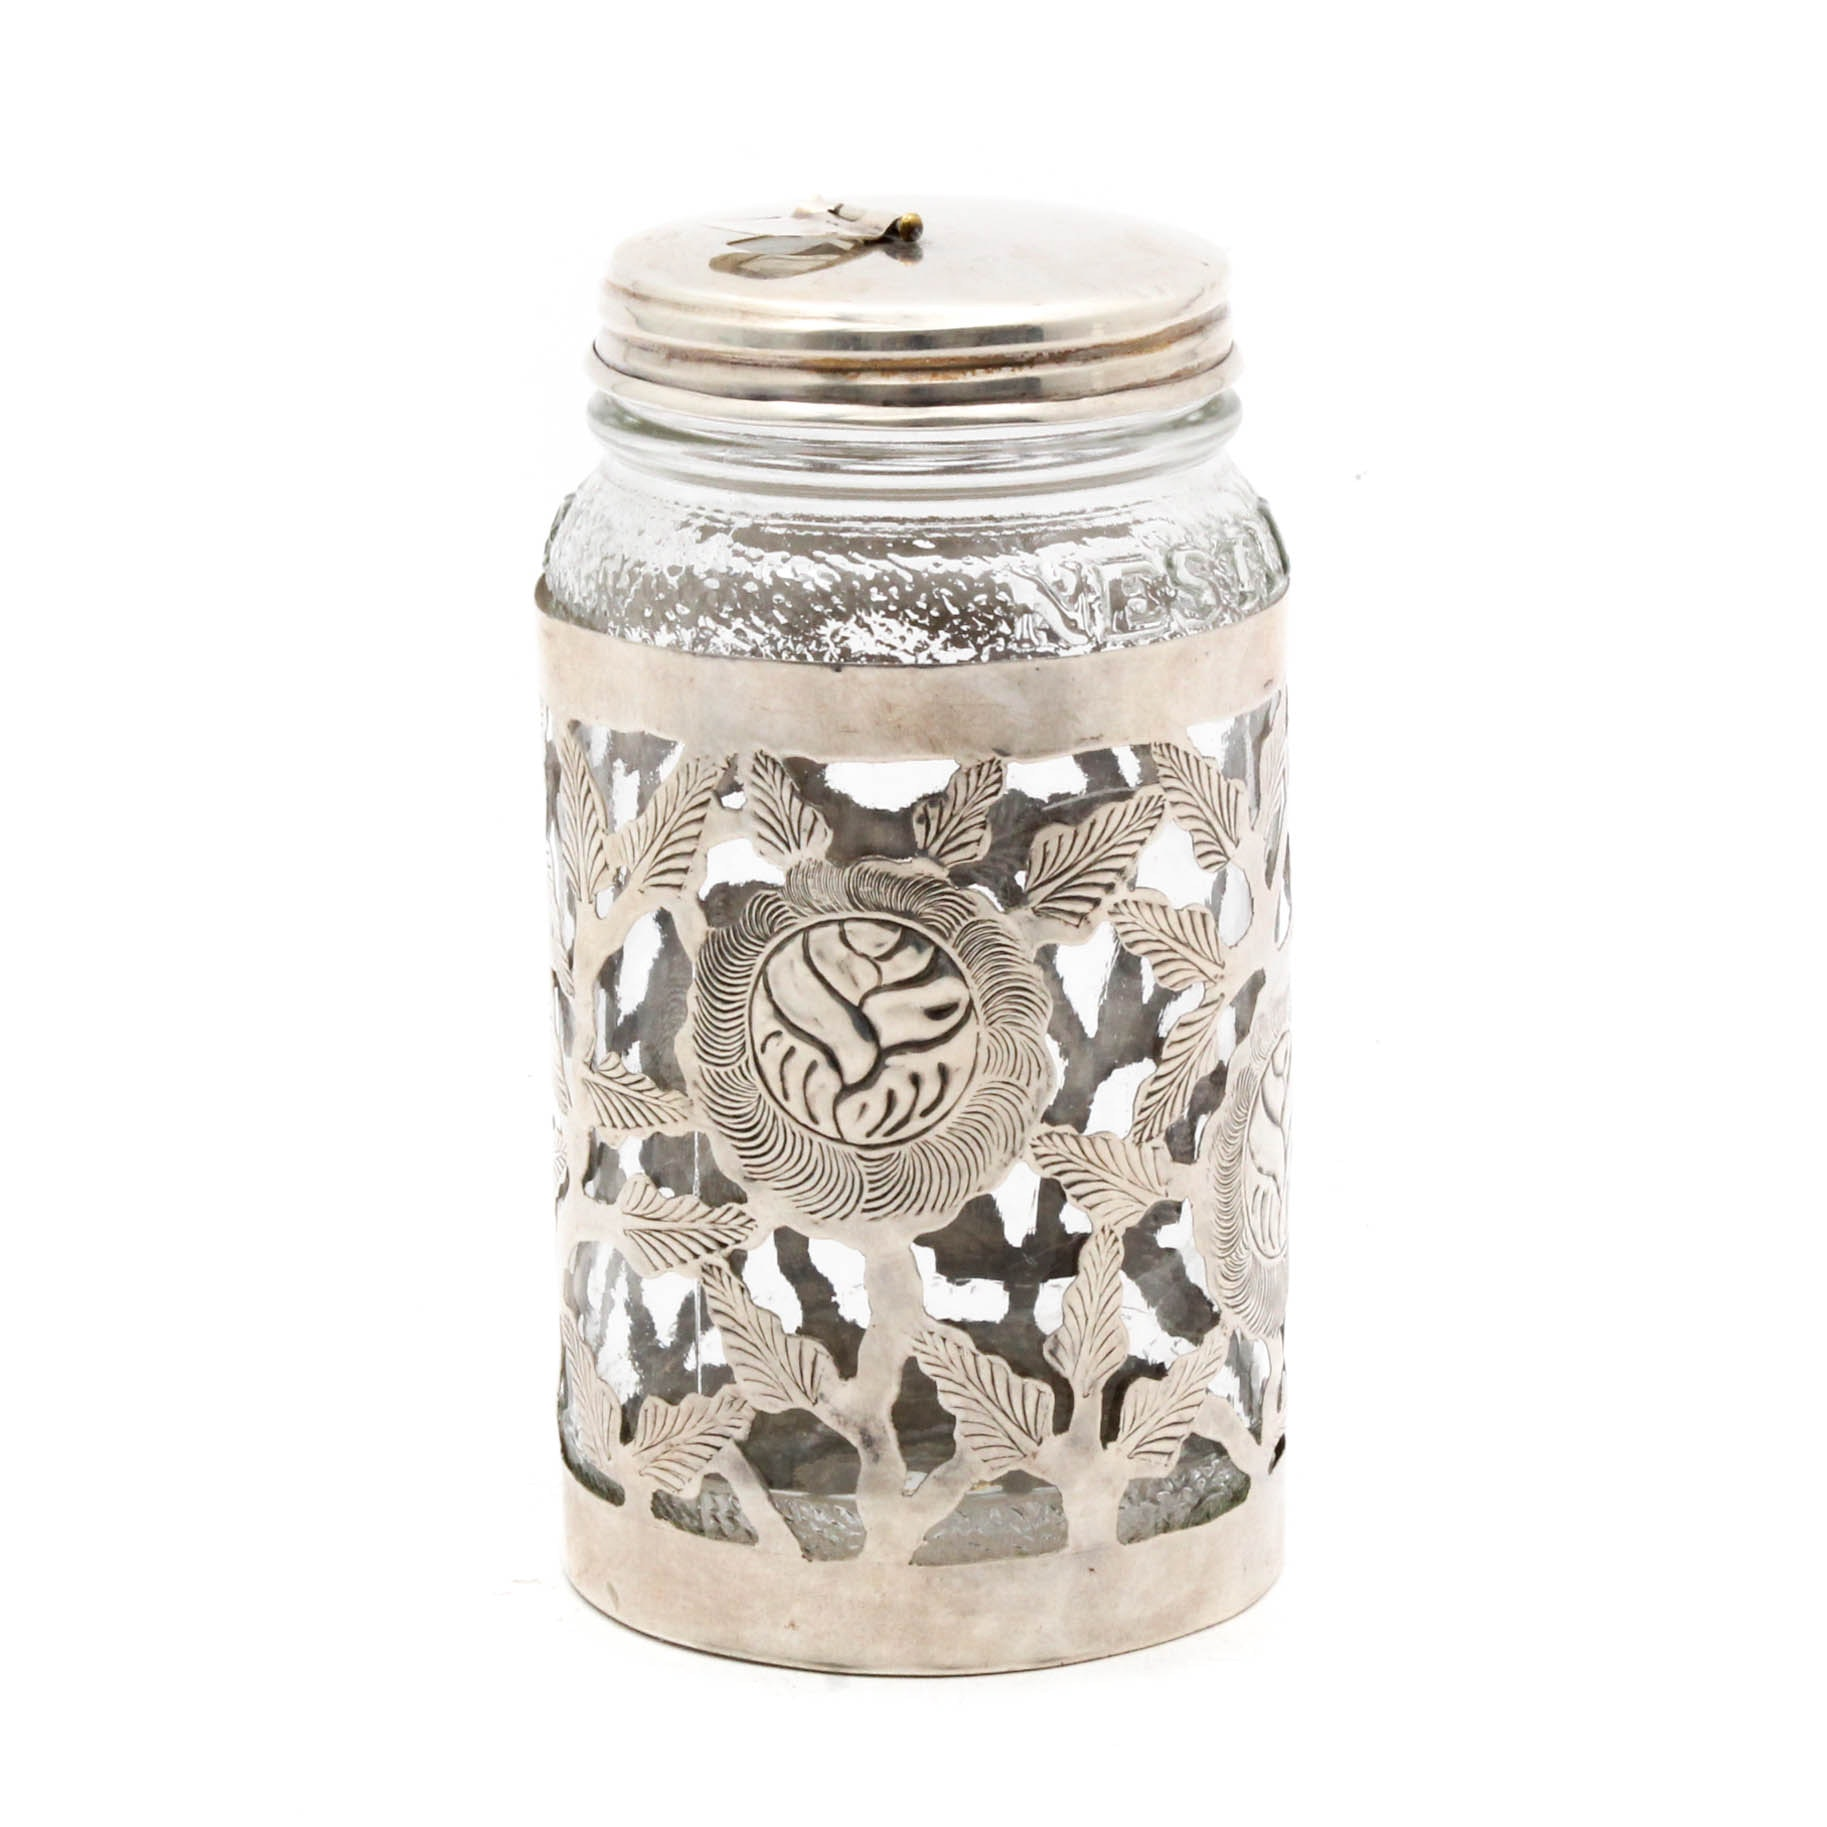 Sterling Silver Pierced and Etched Jar Cover